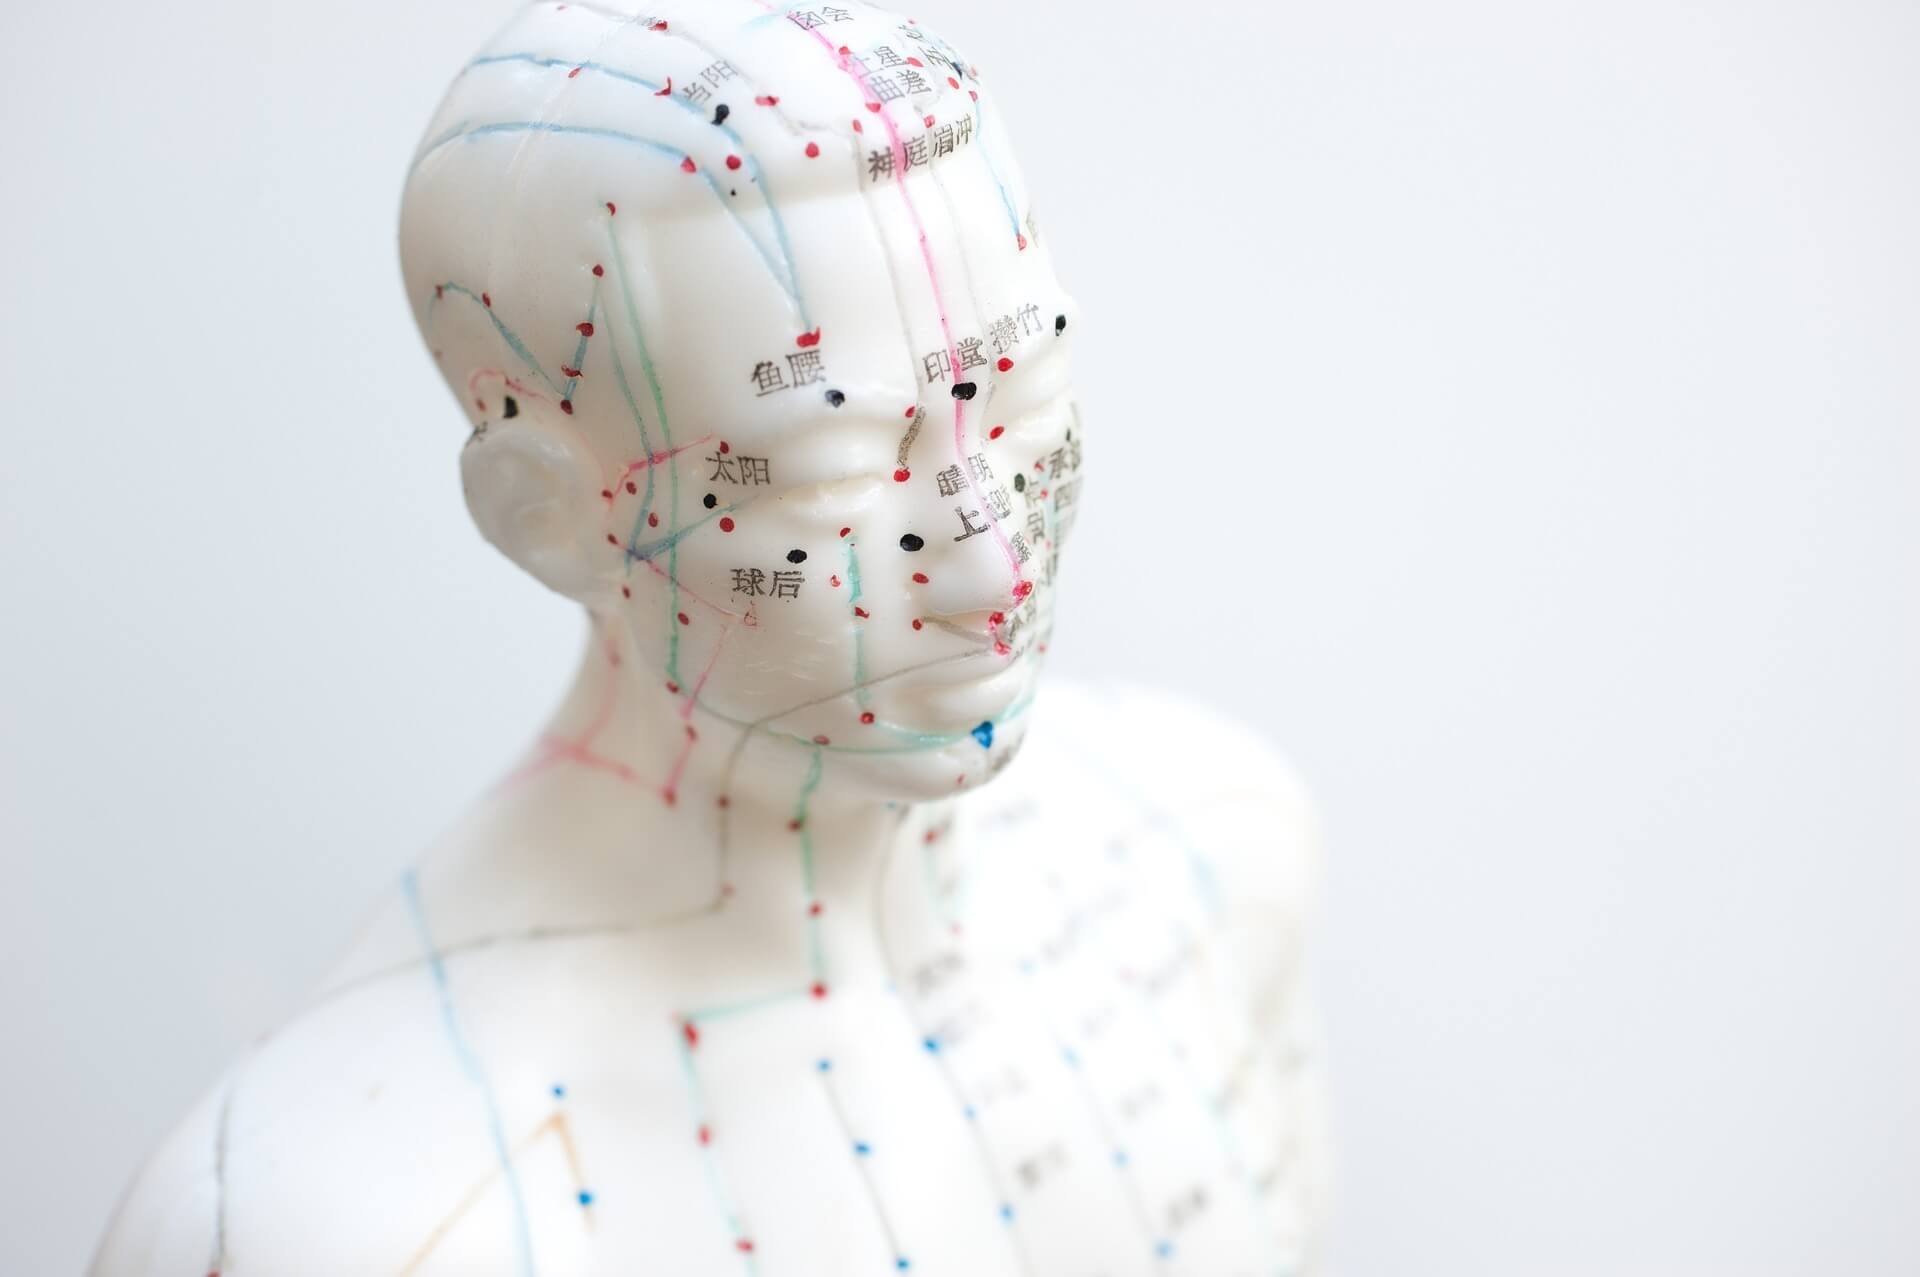 Acupuncture: How Can it Benefit Your Workplace?